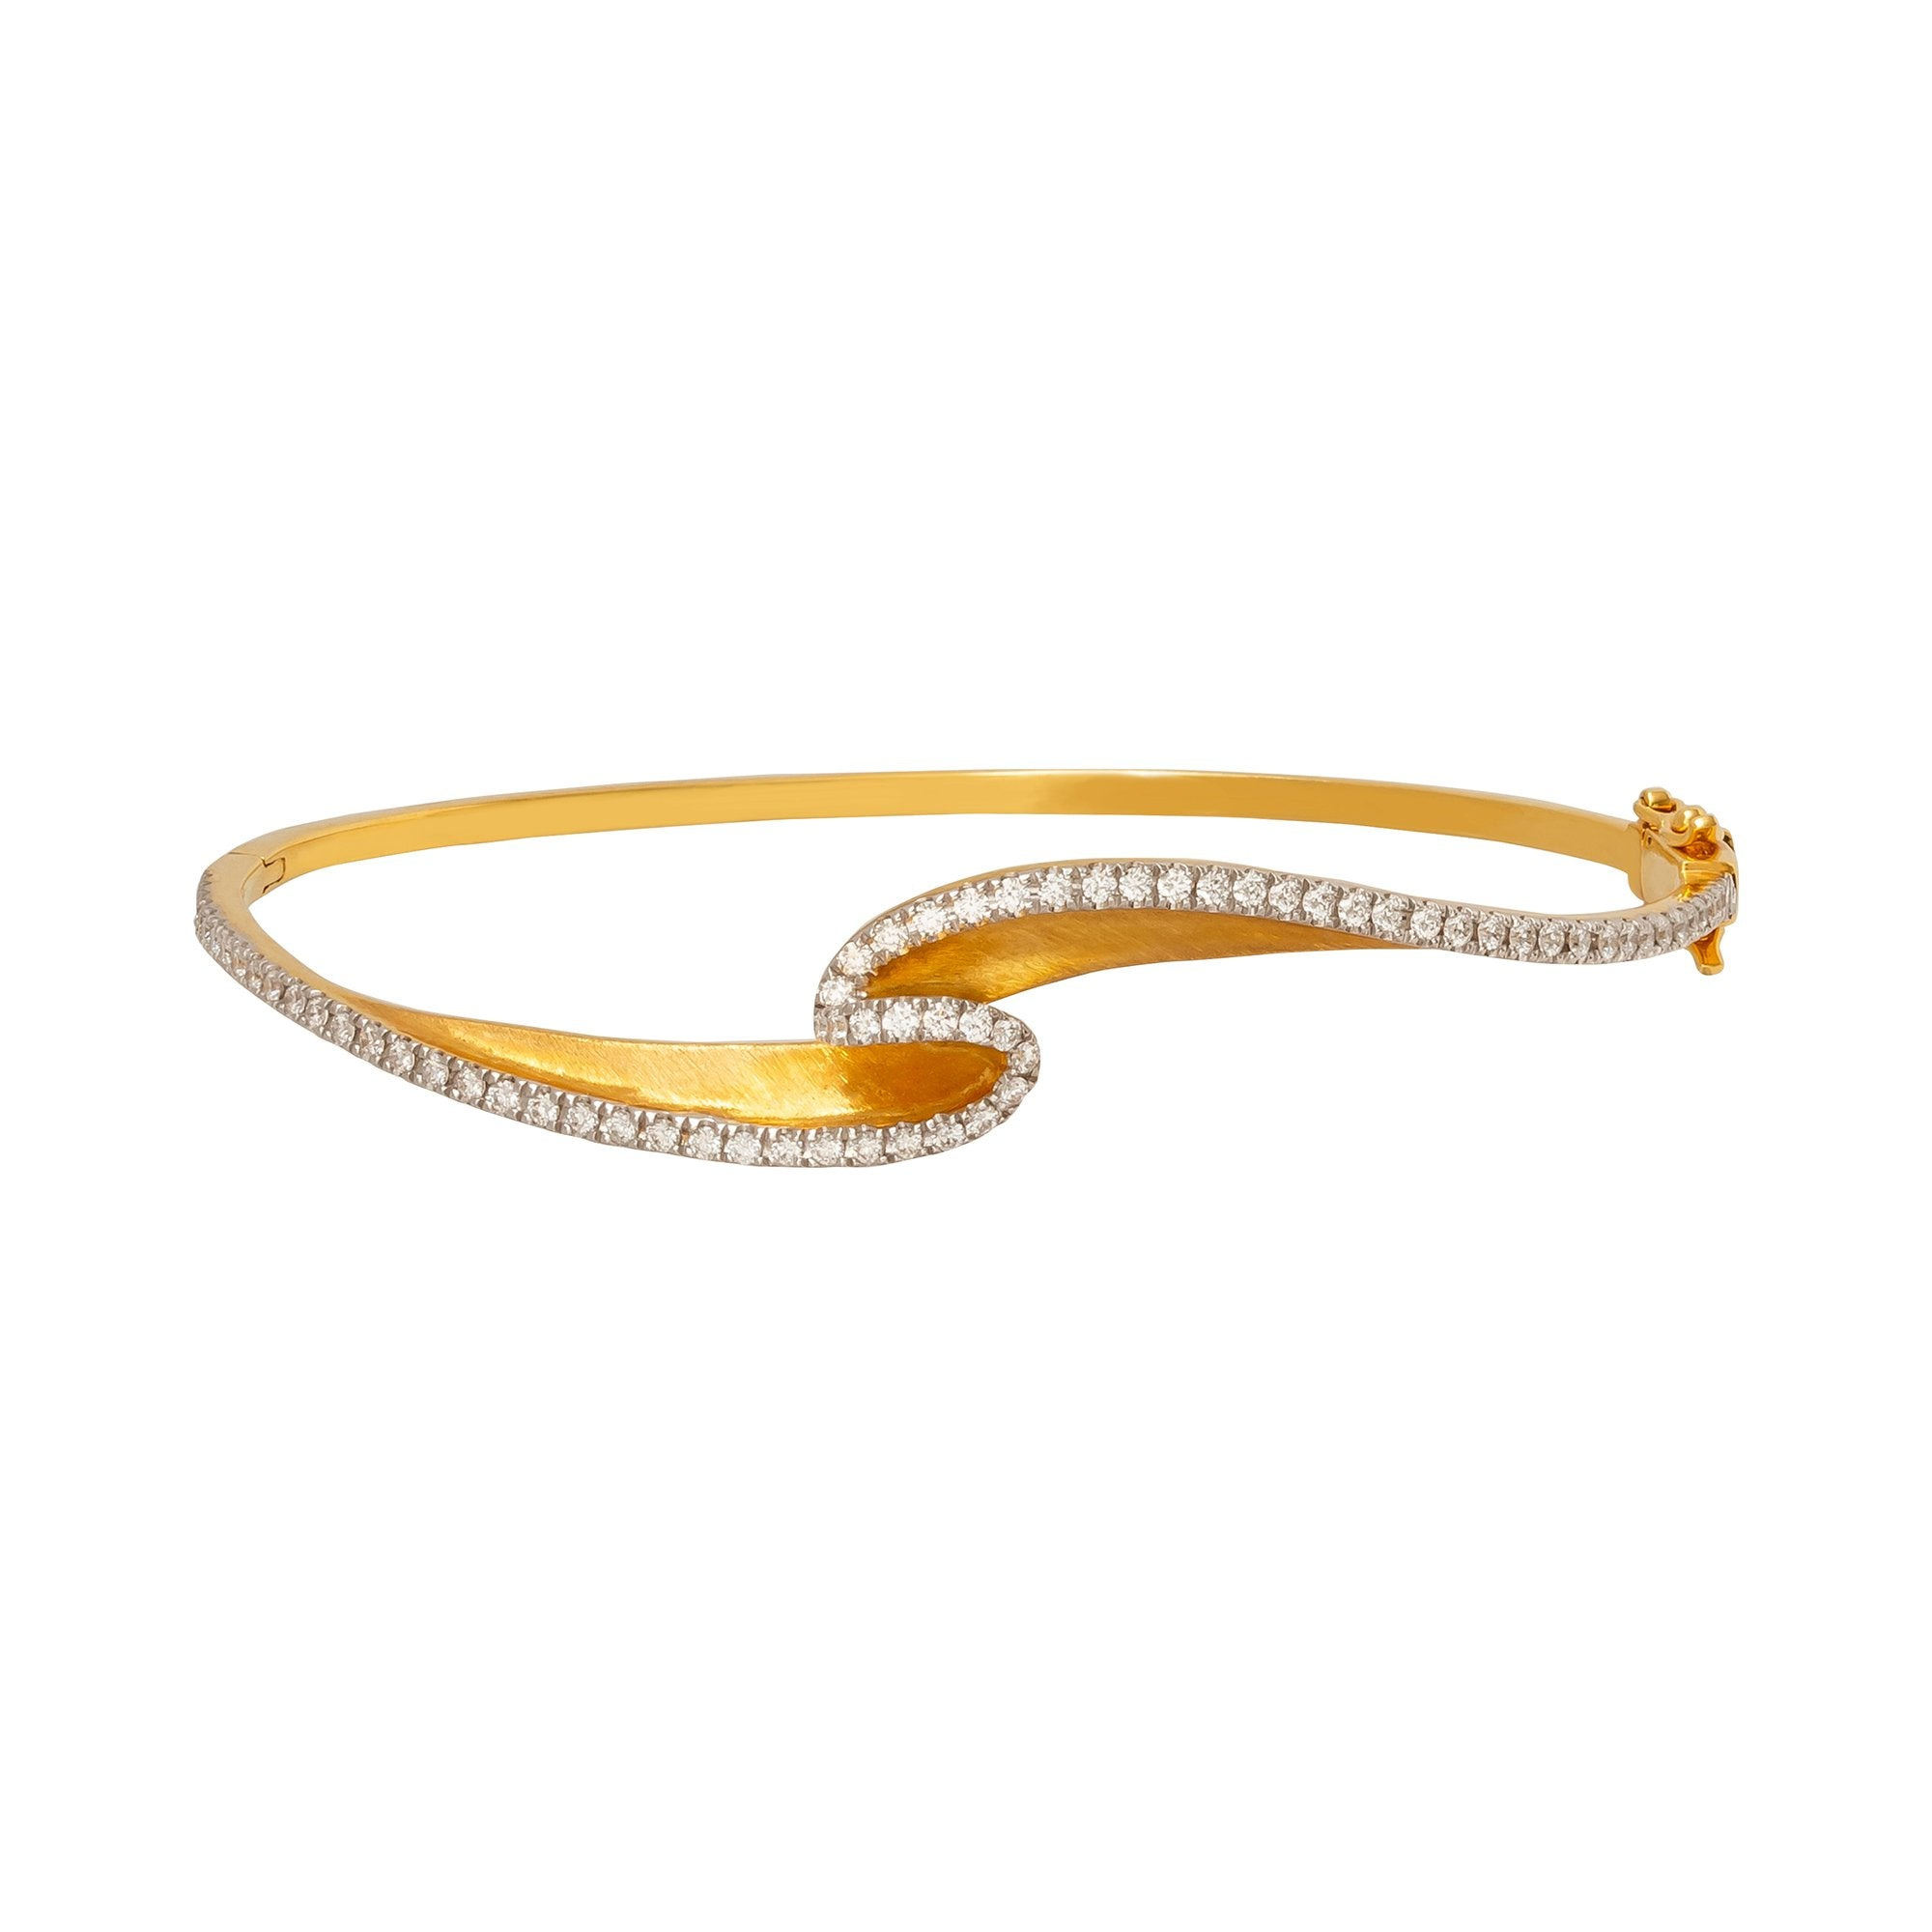 Mini Talay Wave Bangle - Kavant & Sharart  - Bracelets | Broken English Jewelry